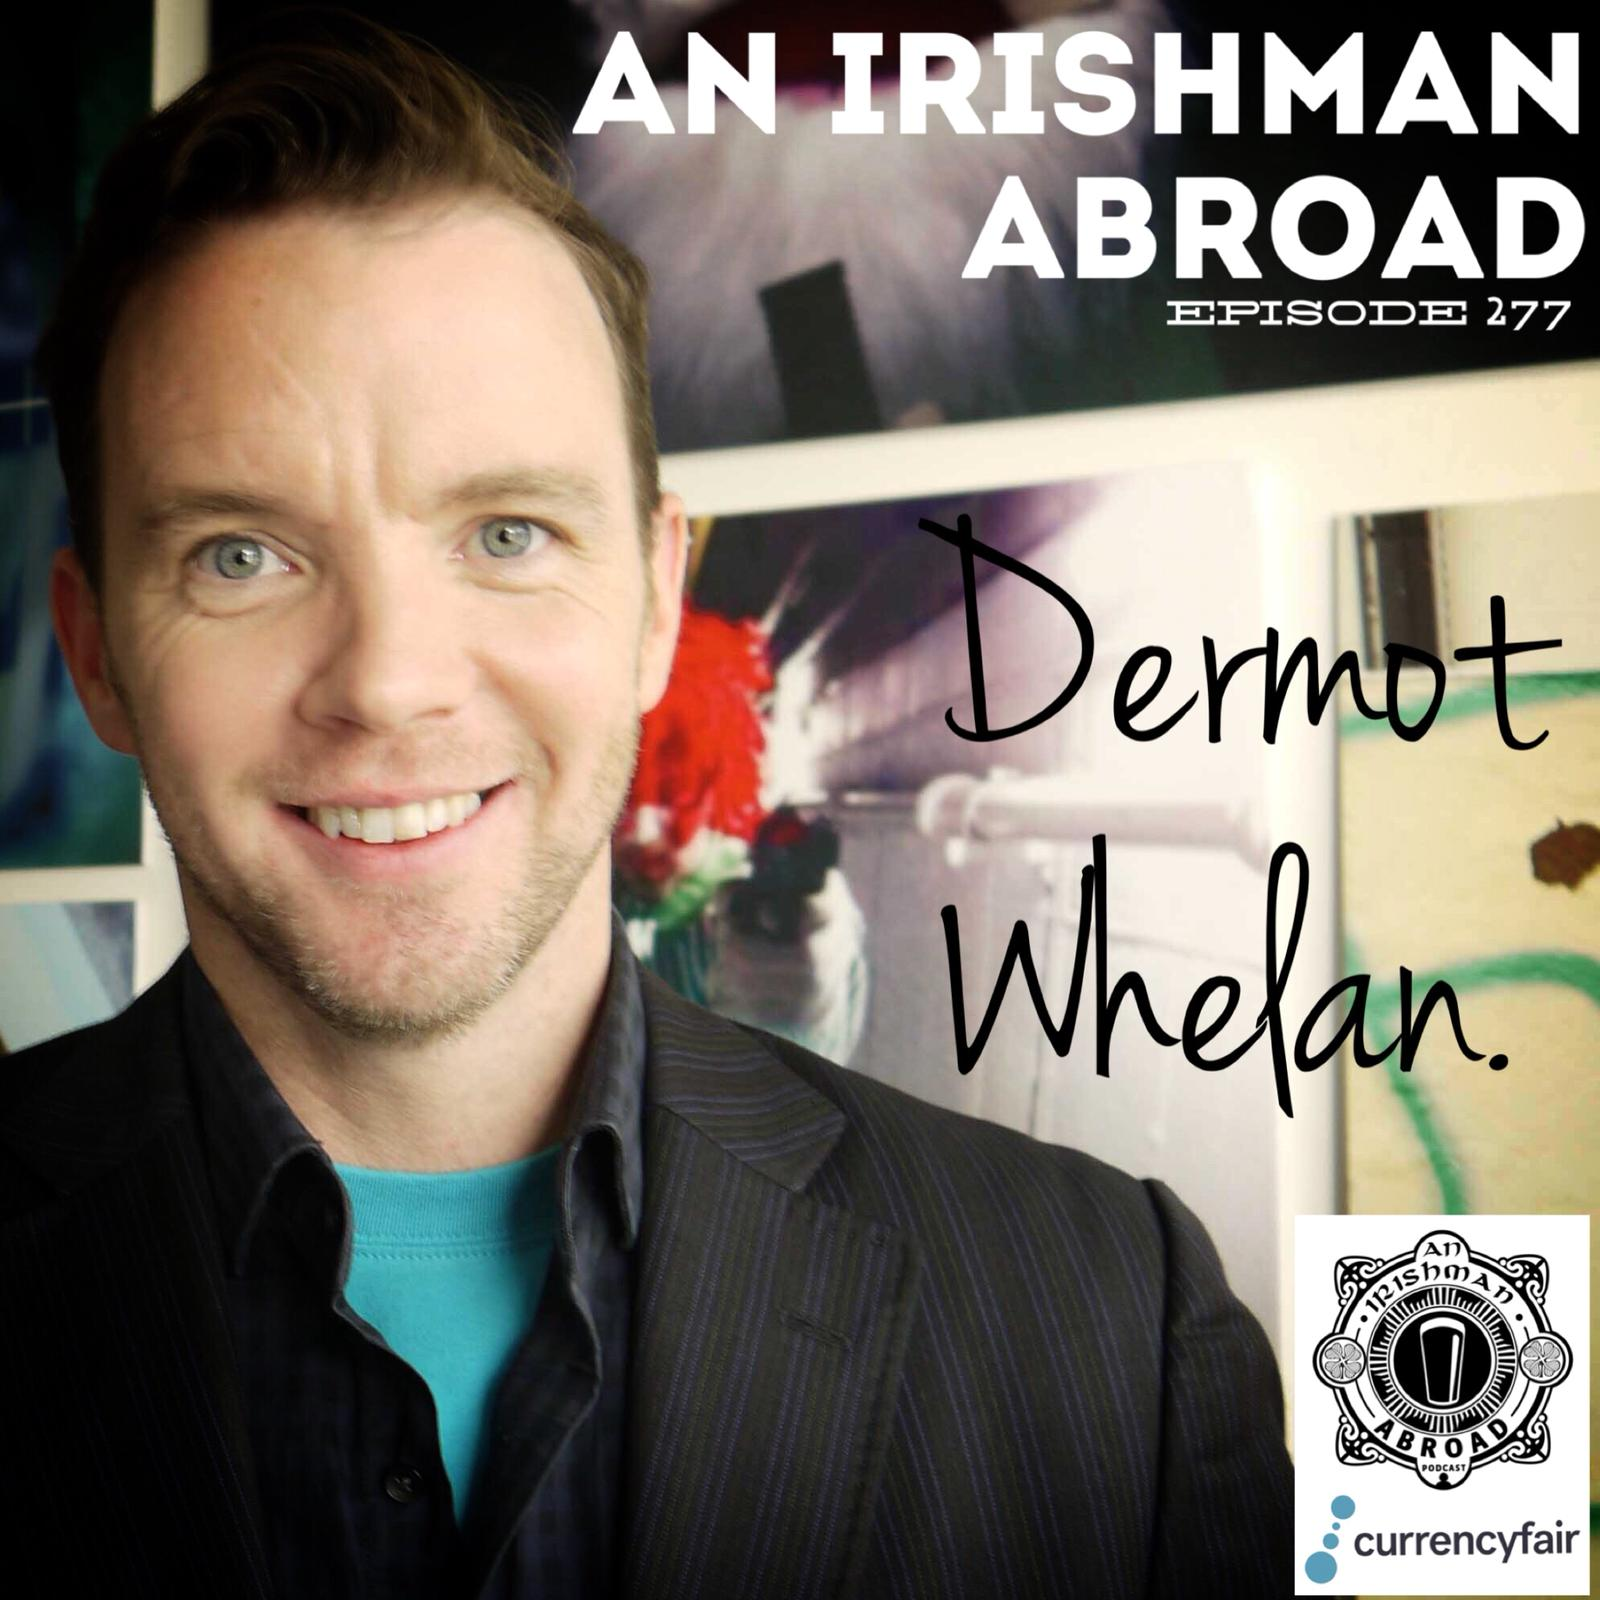 Dermot Whelan: Episode 277